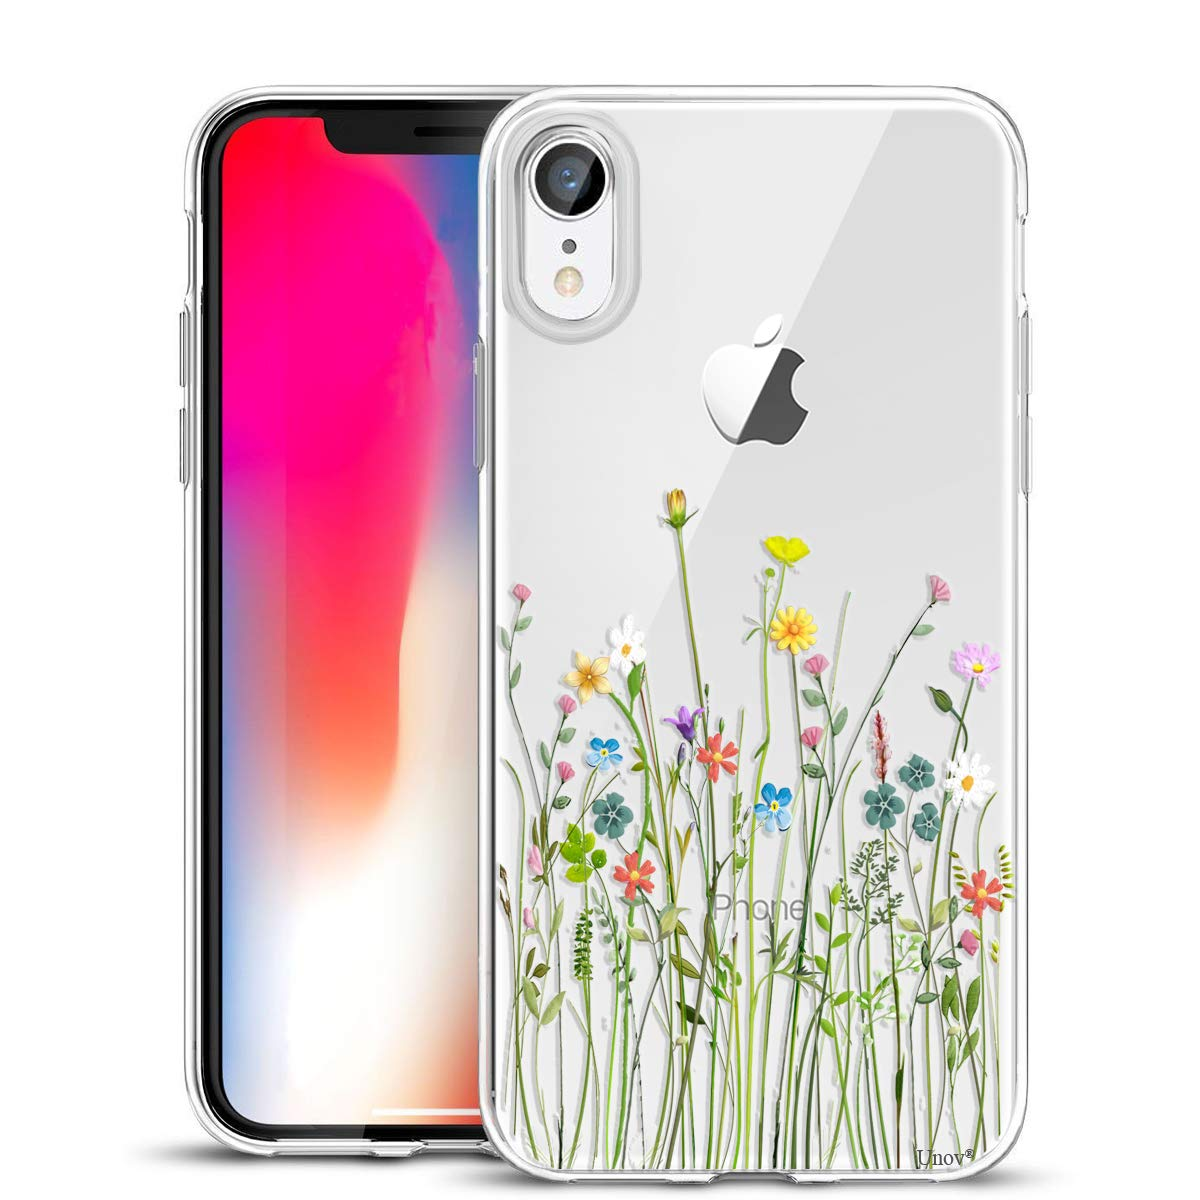 iphone xr phone case pattern